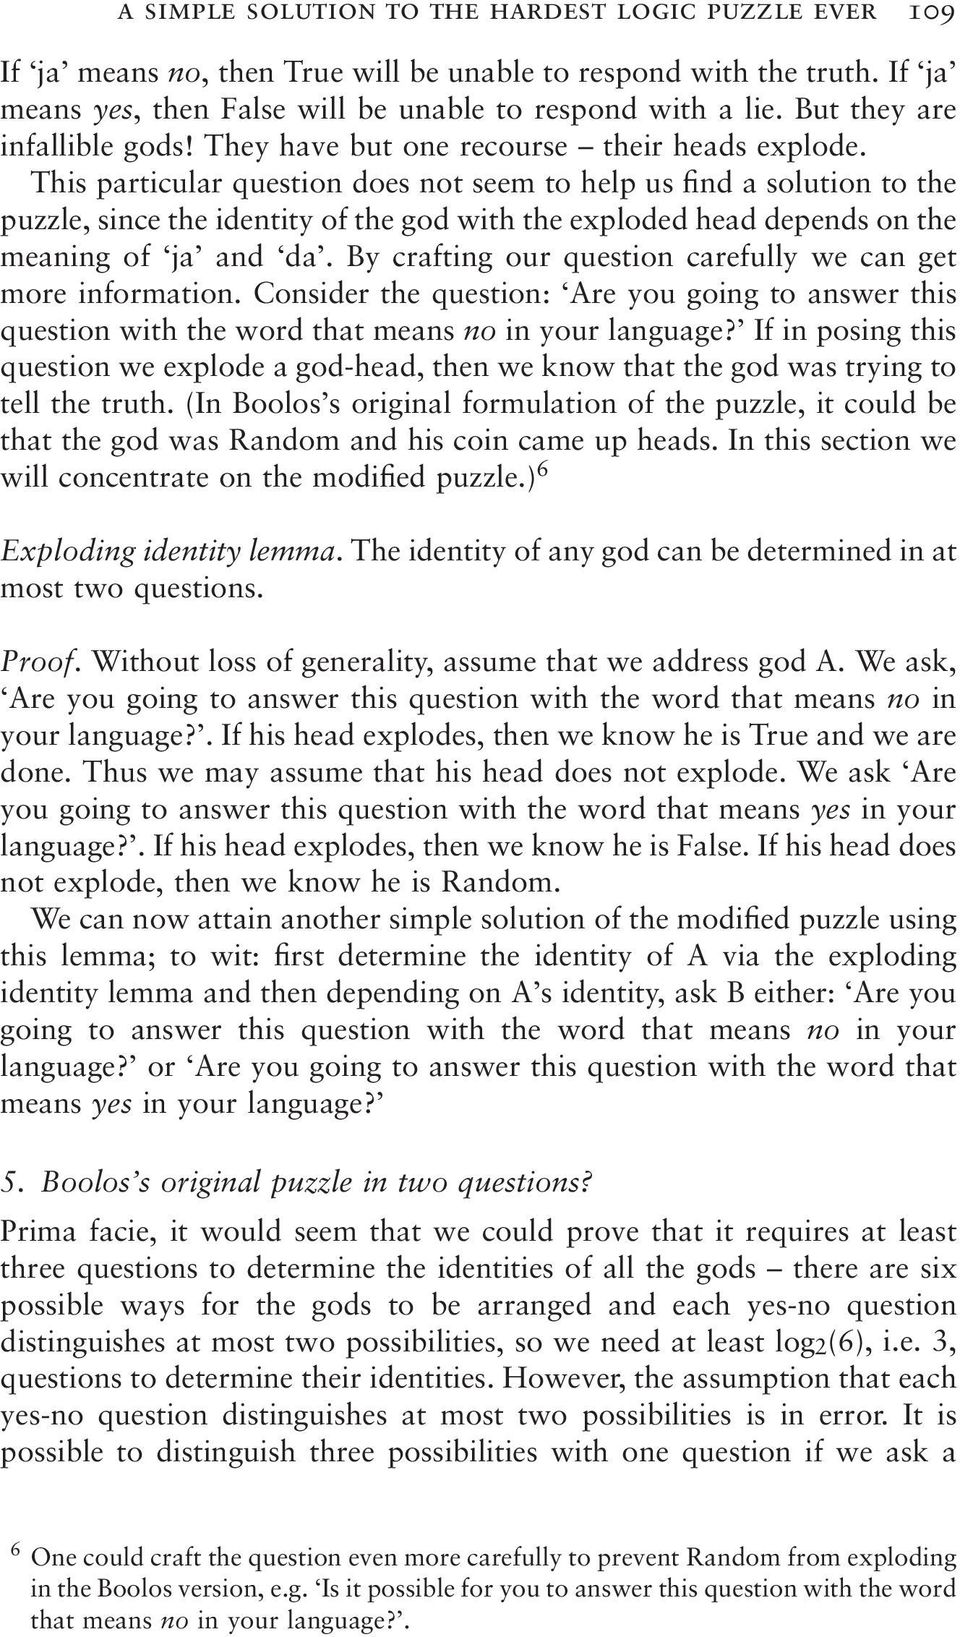 A simple solution to the hardest logic puzzle ever - PDF